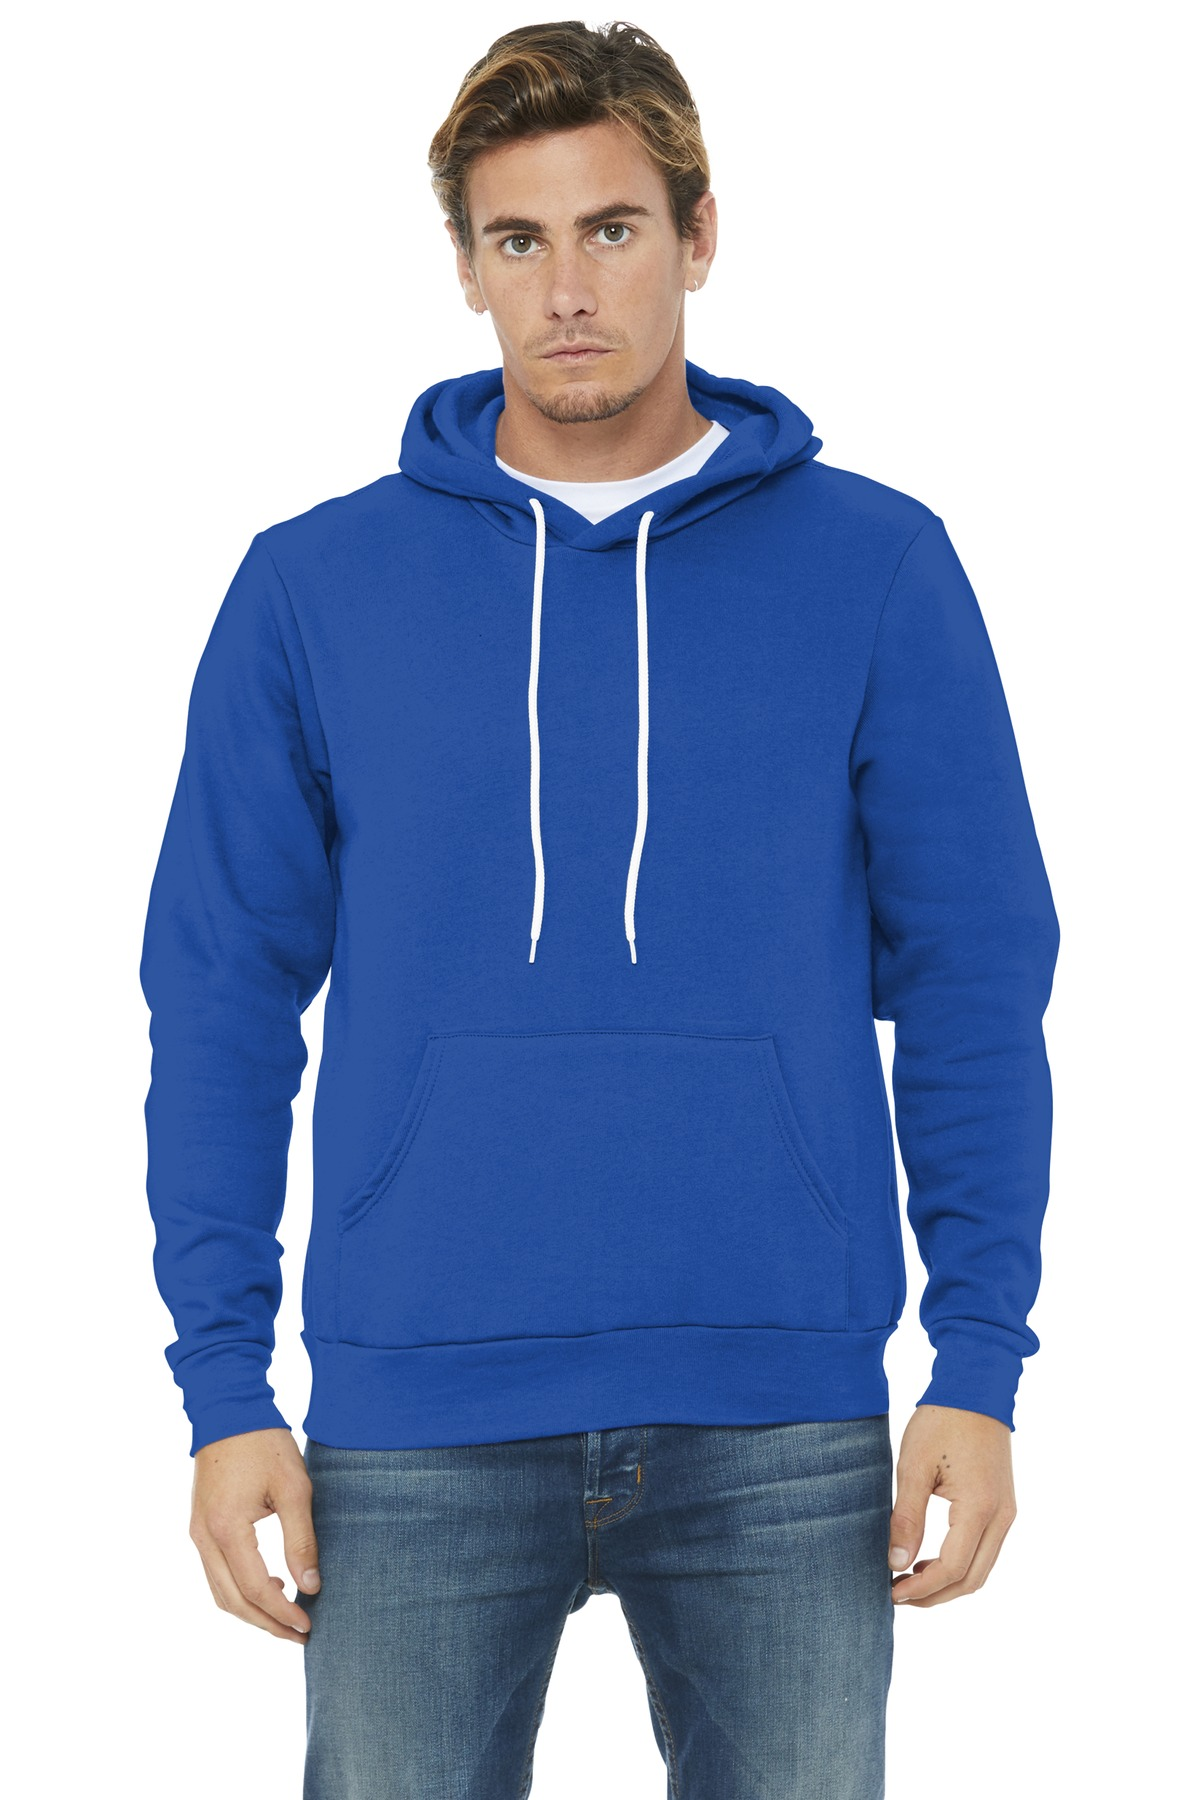 BELLA+CANVAS  ®  Unisex Sponge Fleece Pullover Hoodie. BC3719 - True Royal